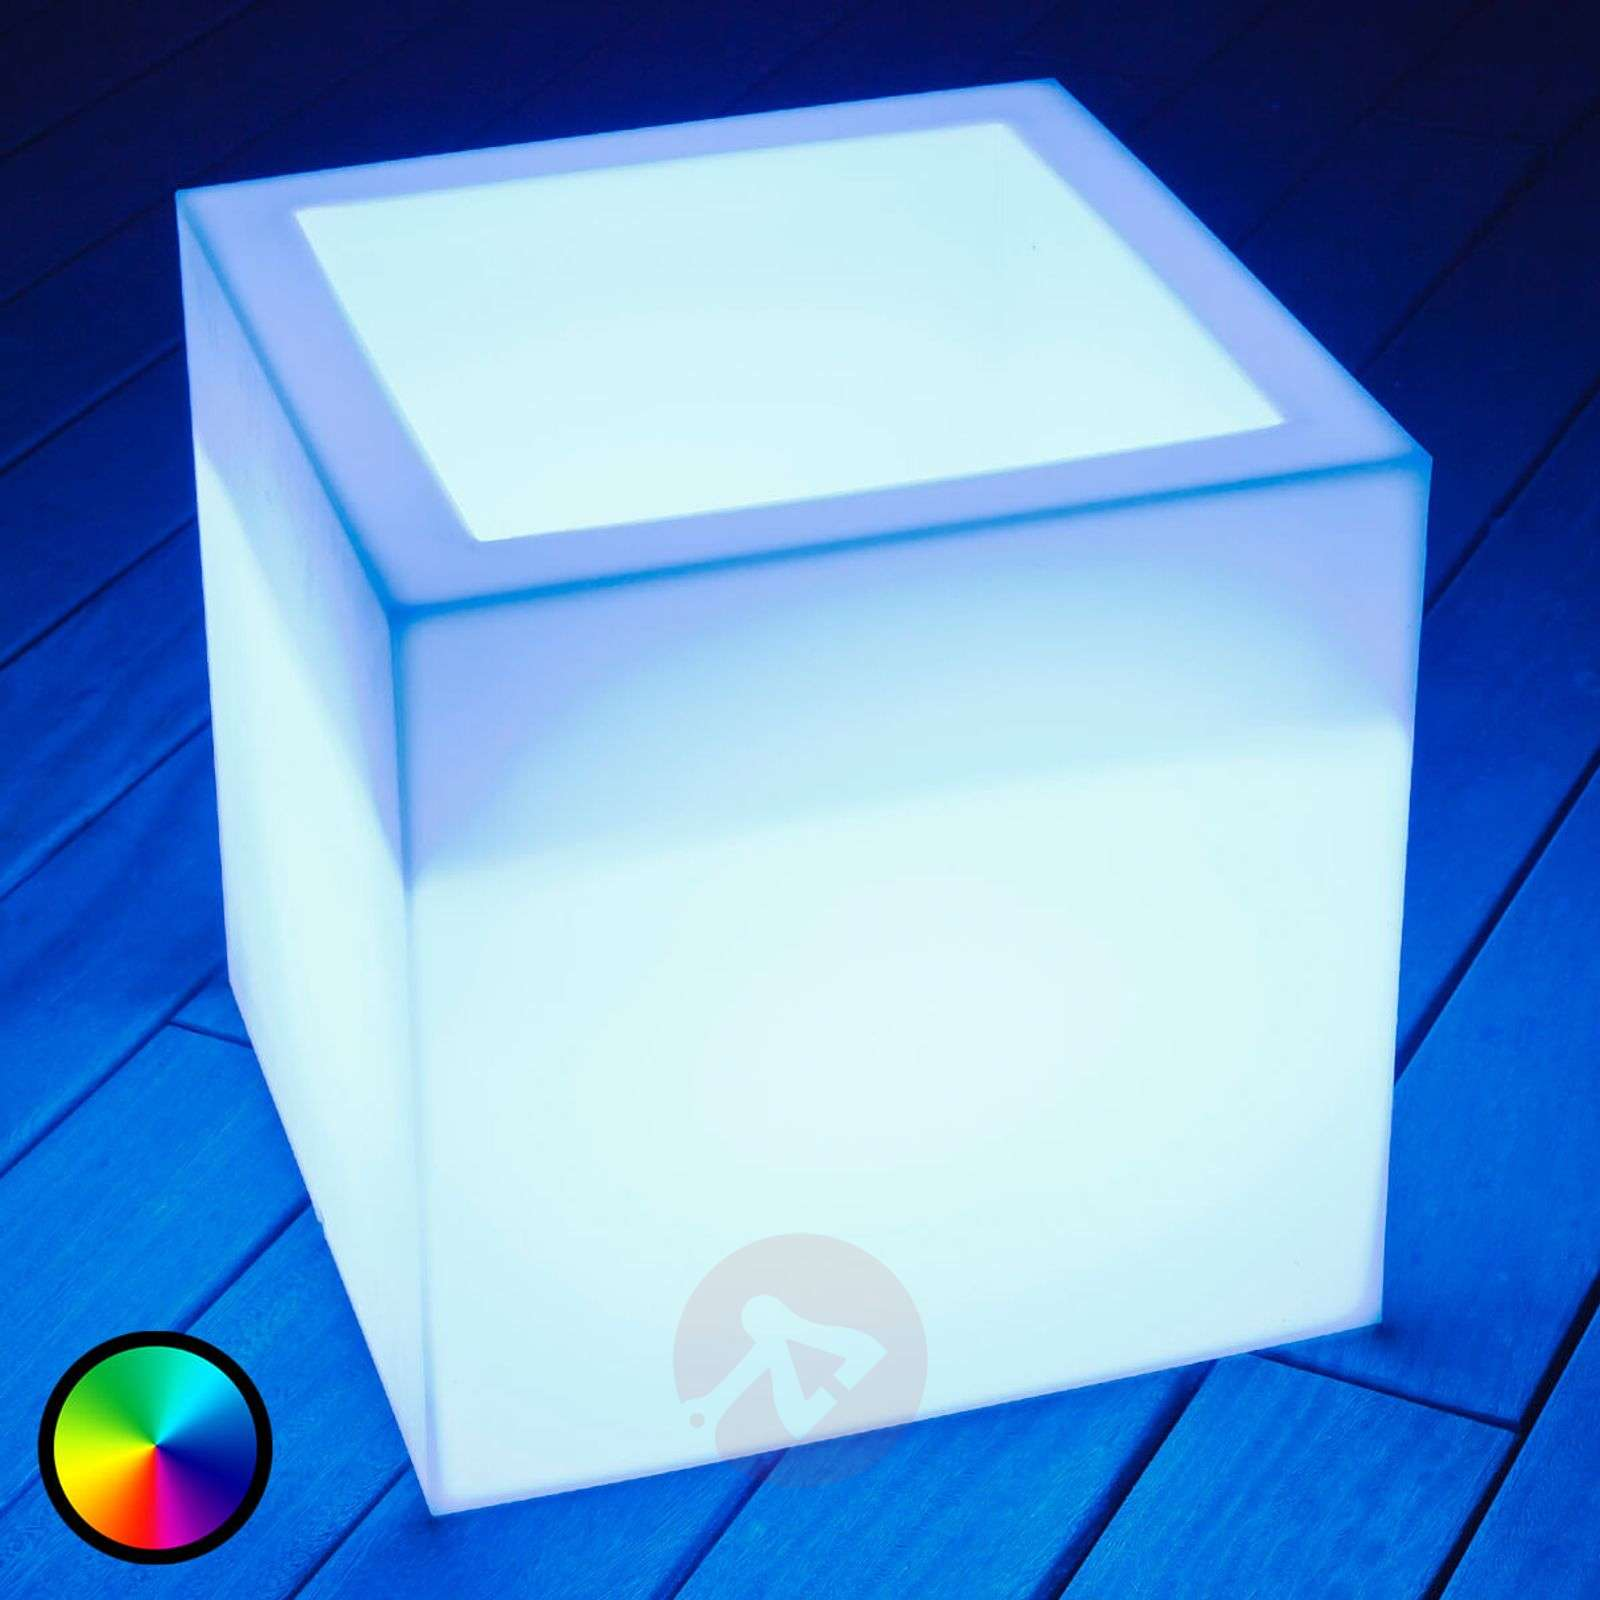 Functional LED cube Passo with Bluetooth control-8590053-01